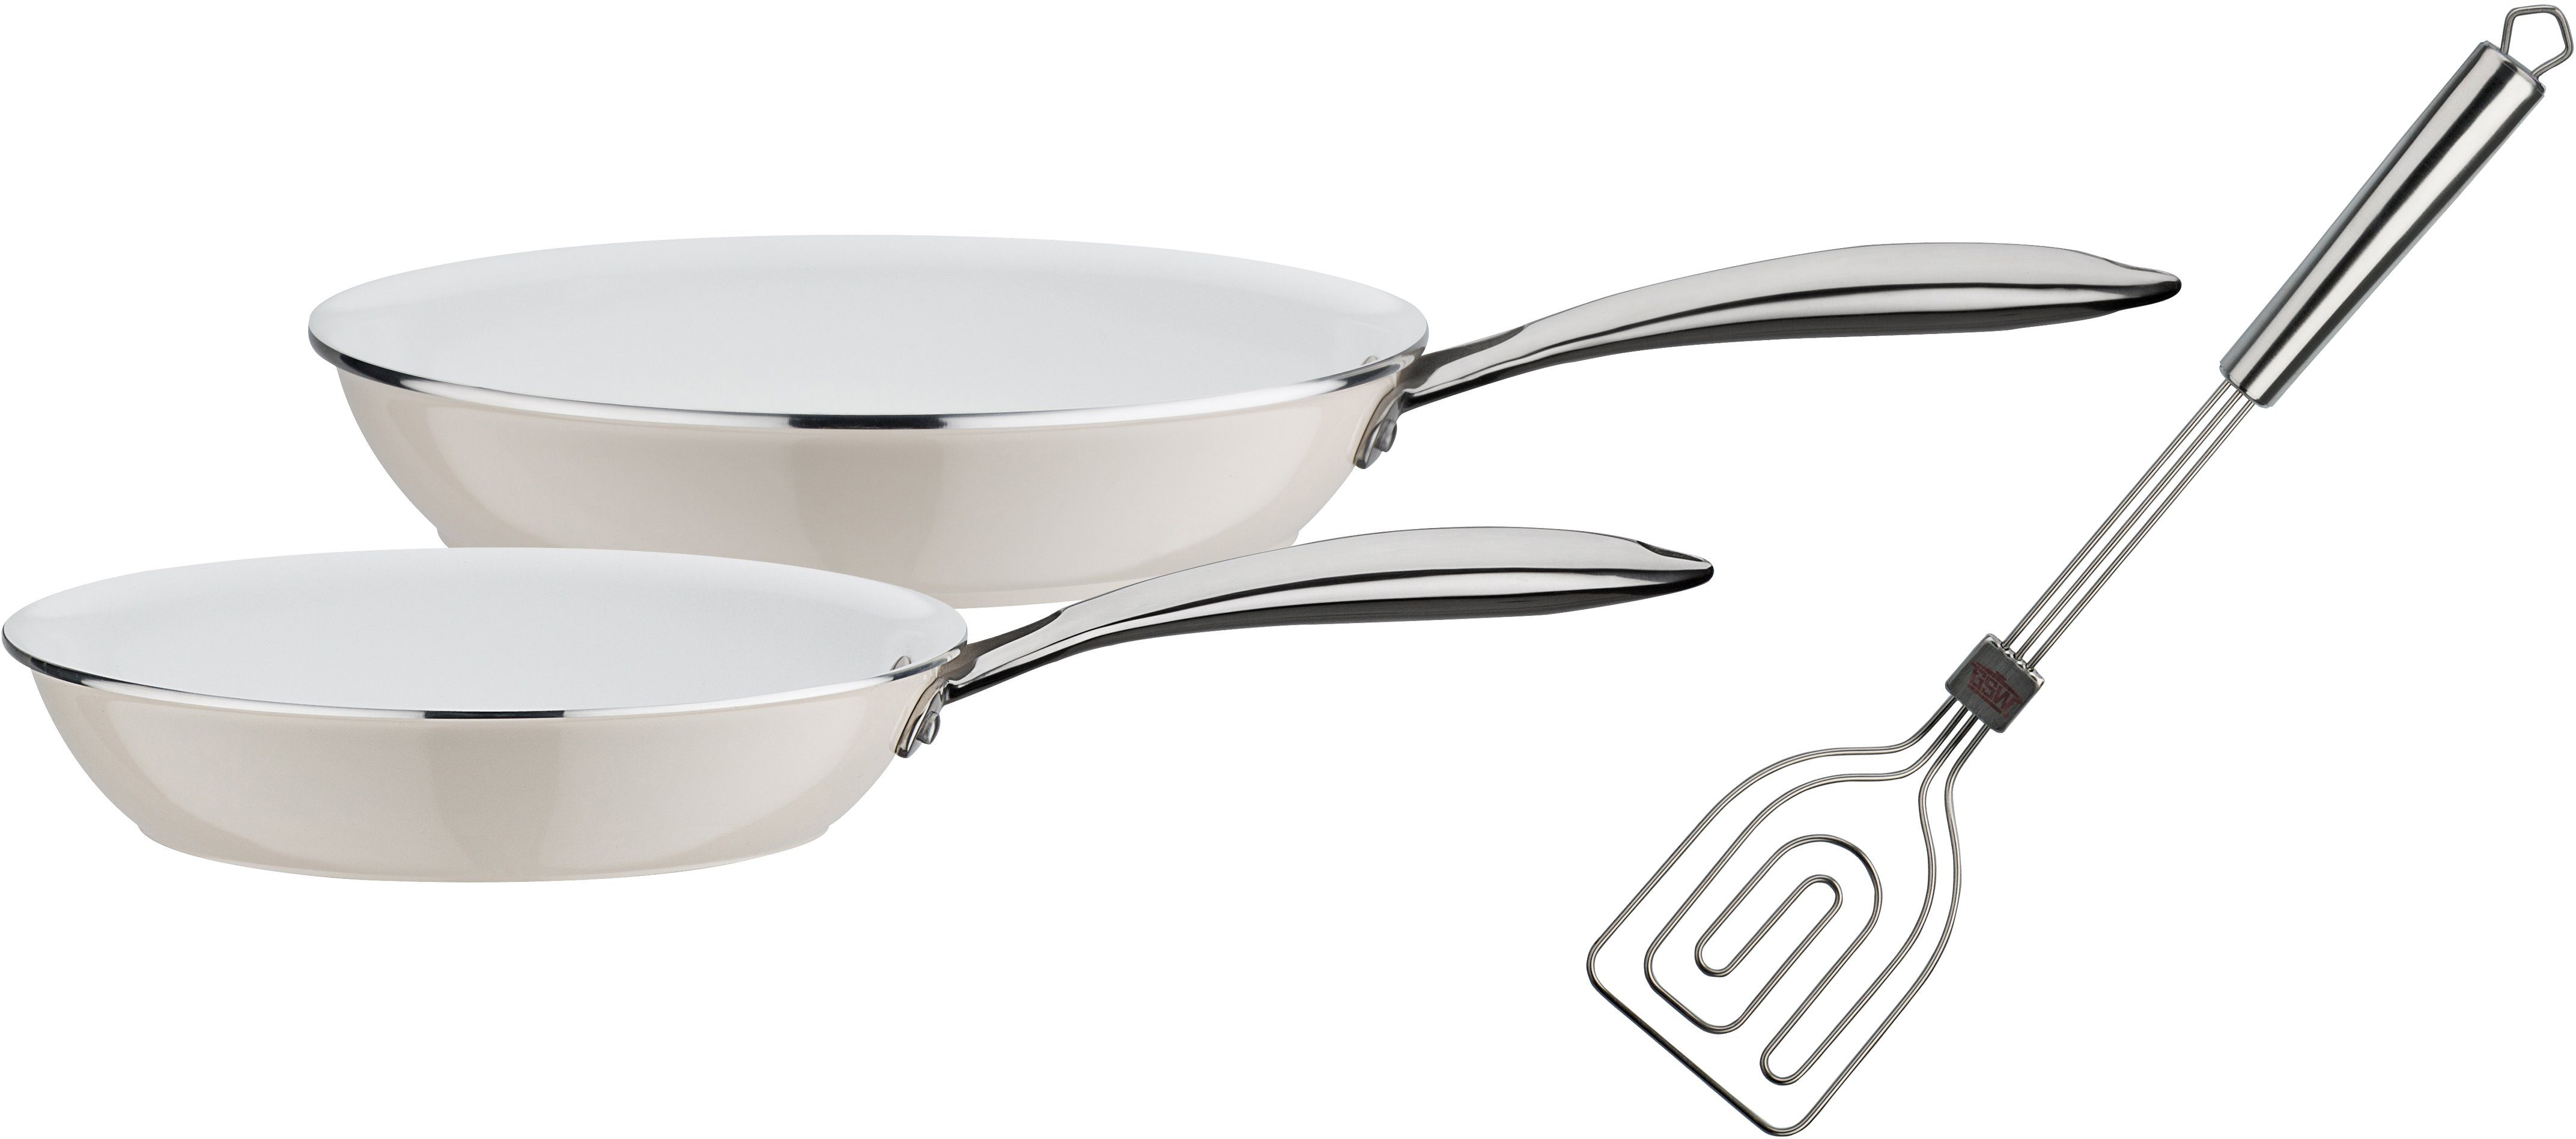 GSW Pfannen-Set, Aluminium Induktion, 3 Teile, »CERAMICA color«